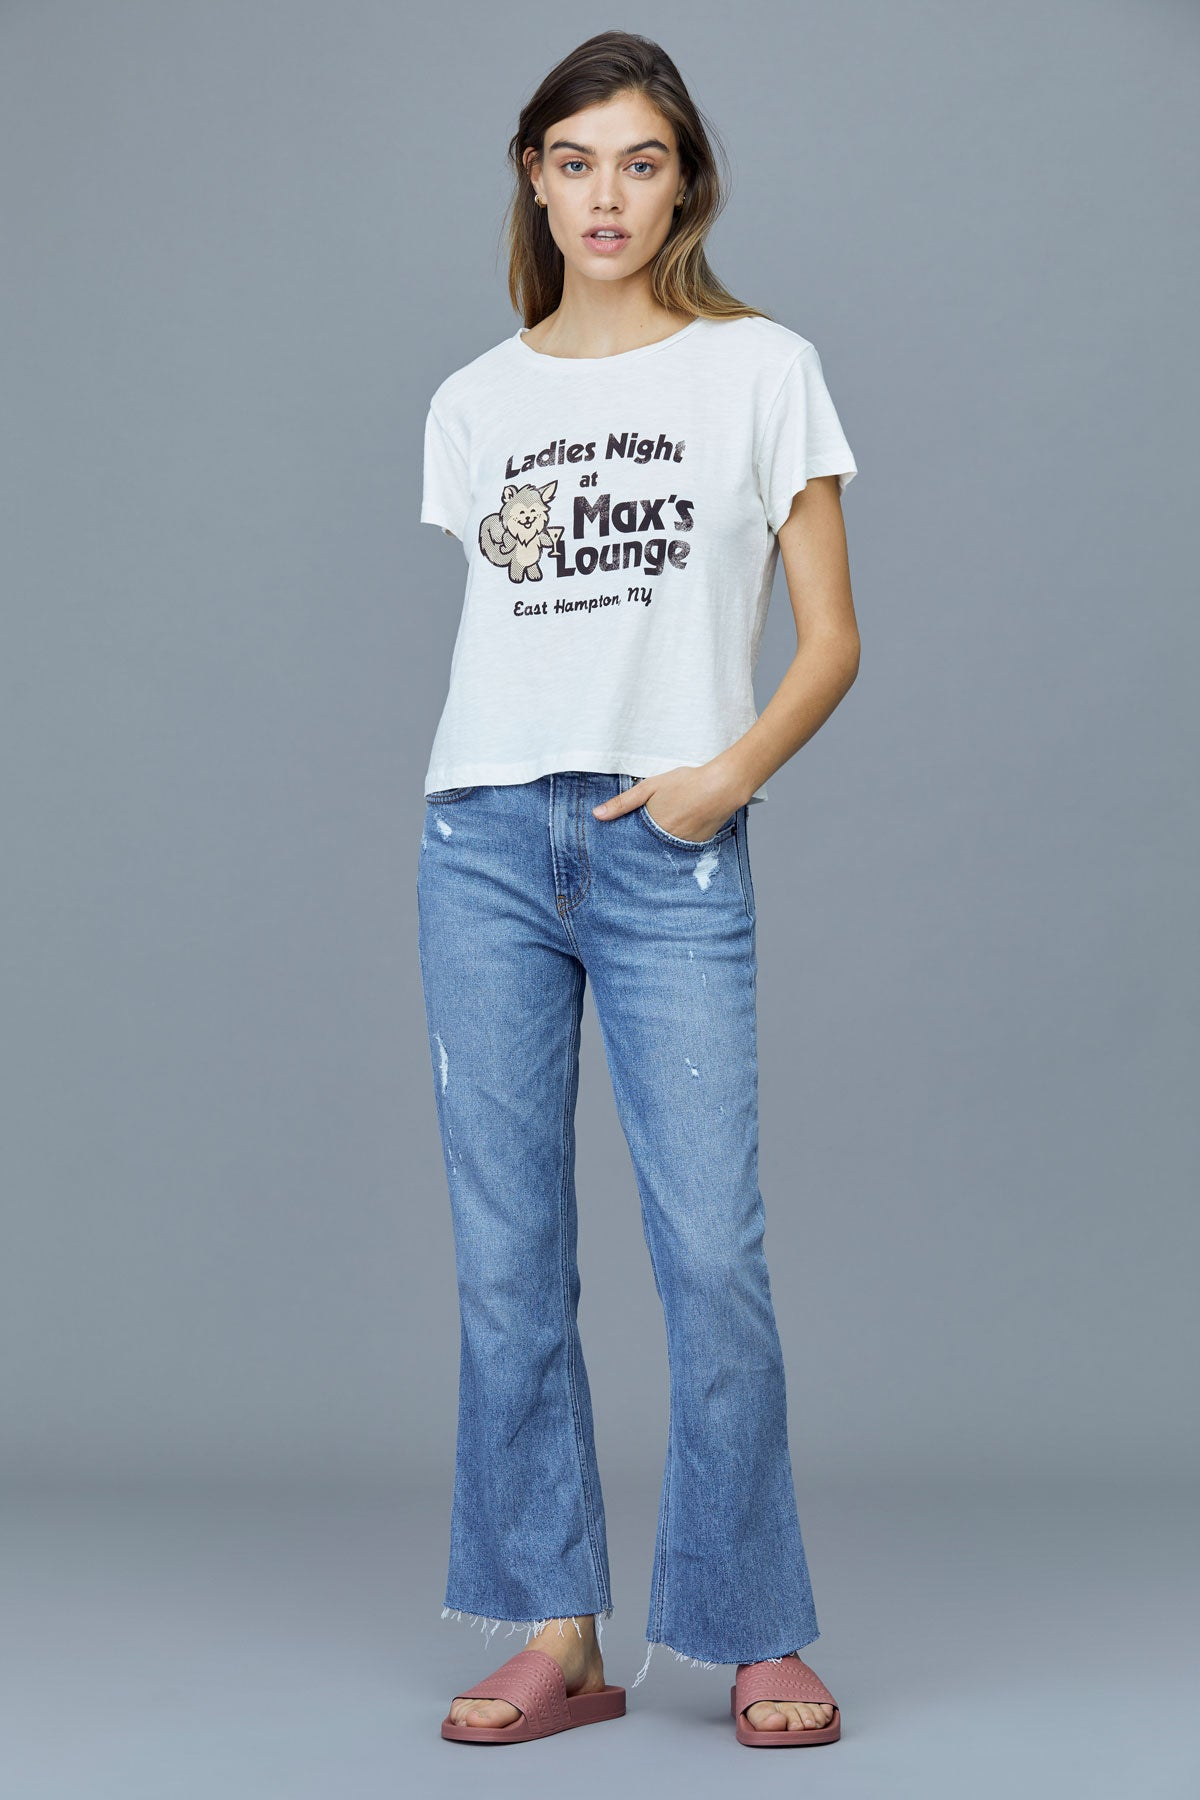 LNa Max's Lounge Tee in Jet Stream